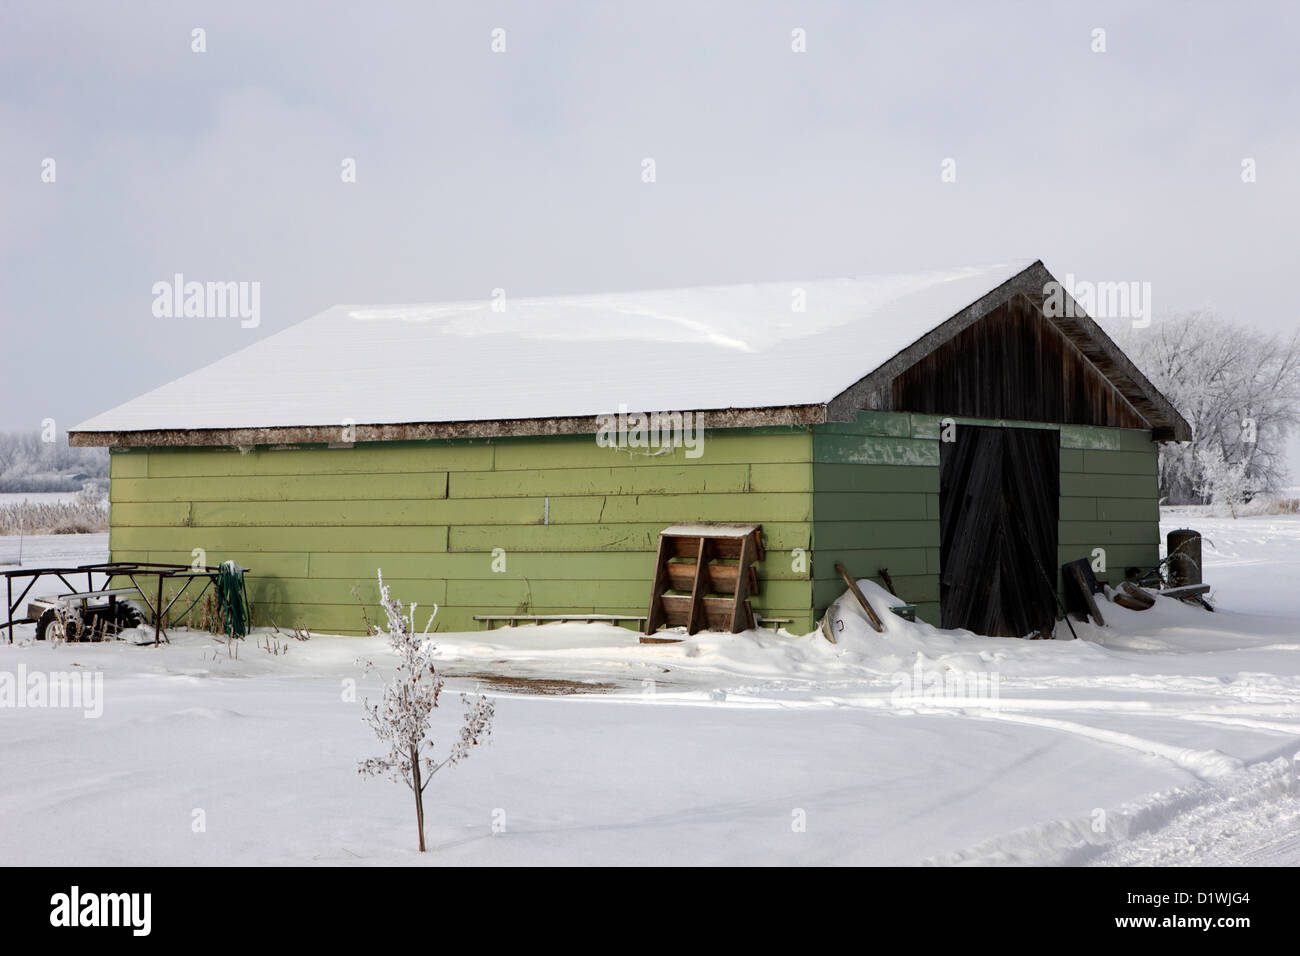 traditional wooden plank barn in rural village Forget Saskatchewan Canada - Stock Image